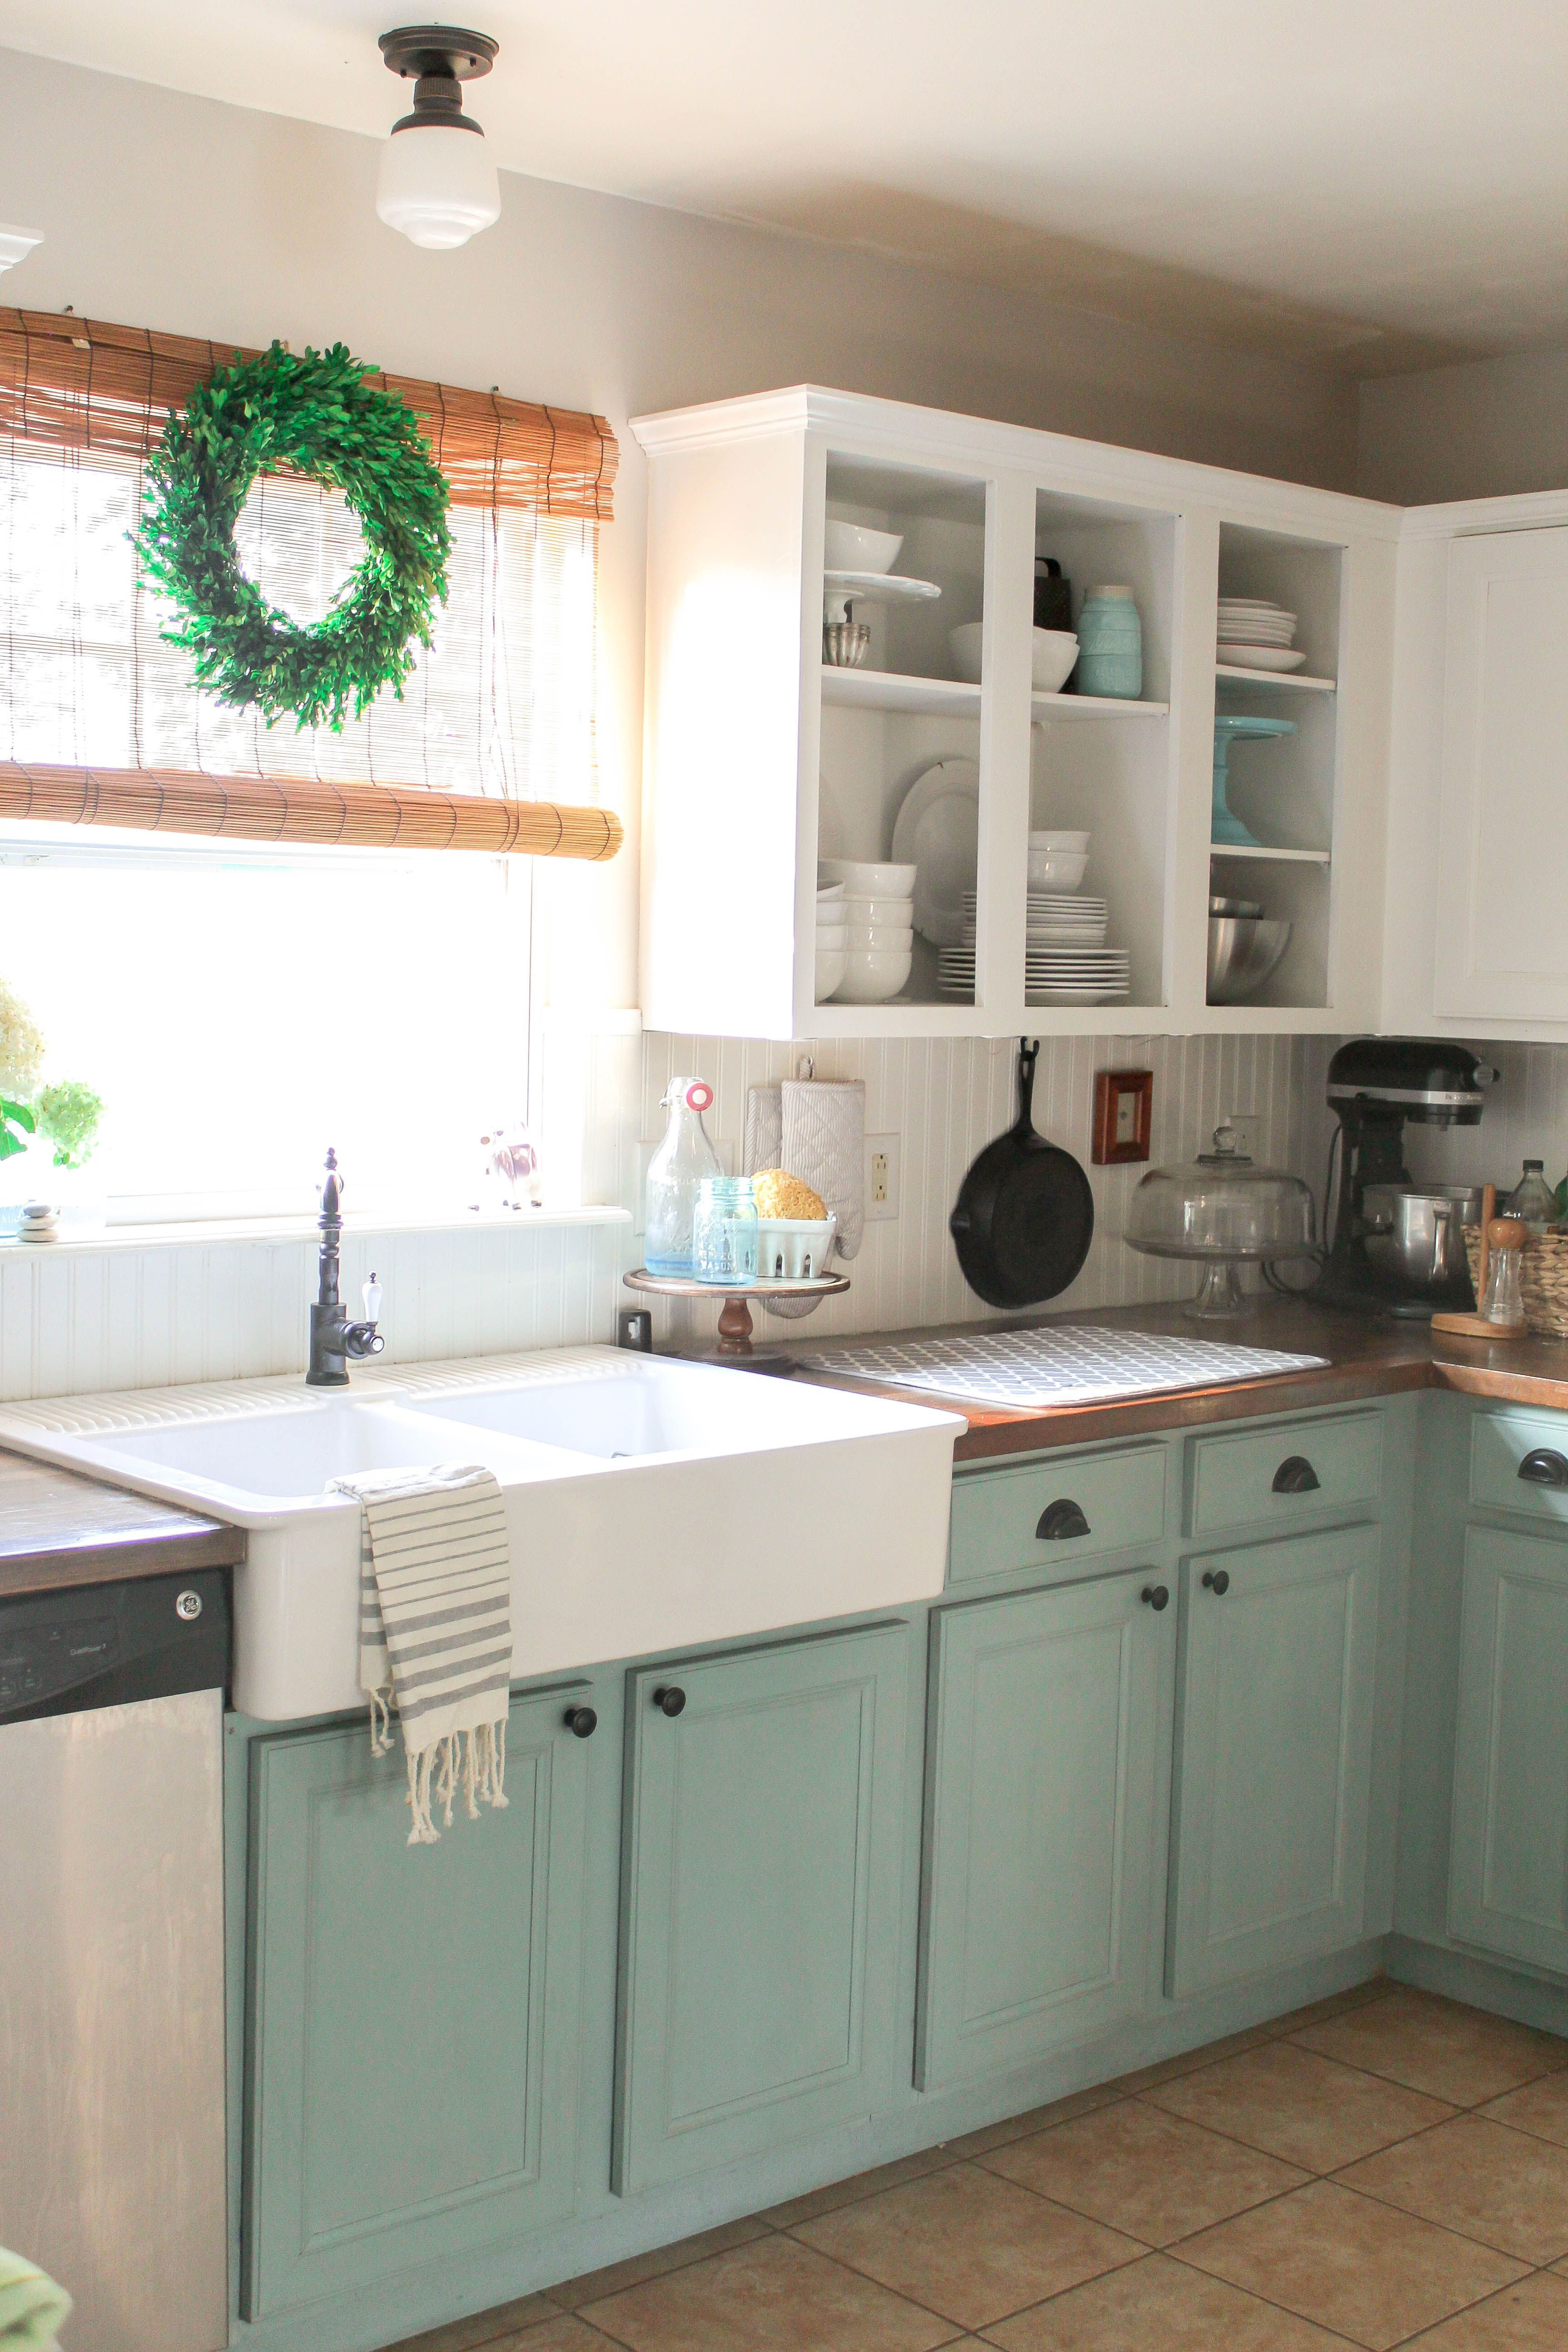 New Painting Kitchen Cabinets Good Or Bad Idea Chalk Paint Kitchen Cabinets Kitchen Cabinet Design Farmhouse Kitchen Cabinets